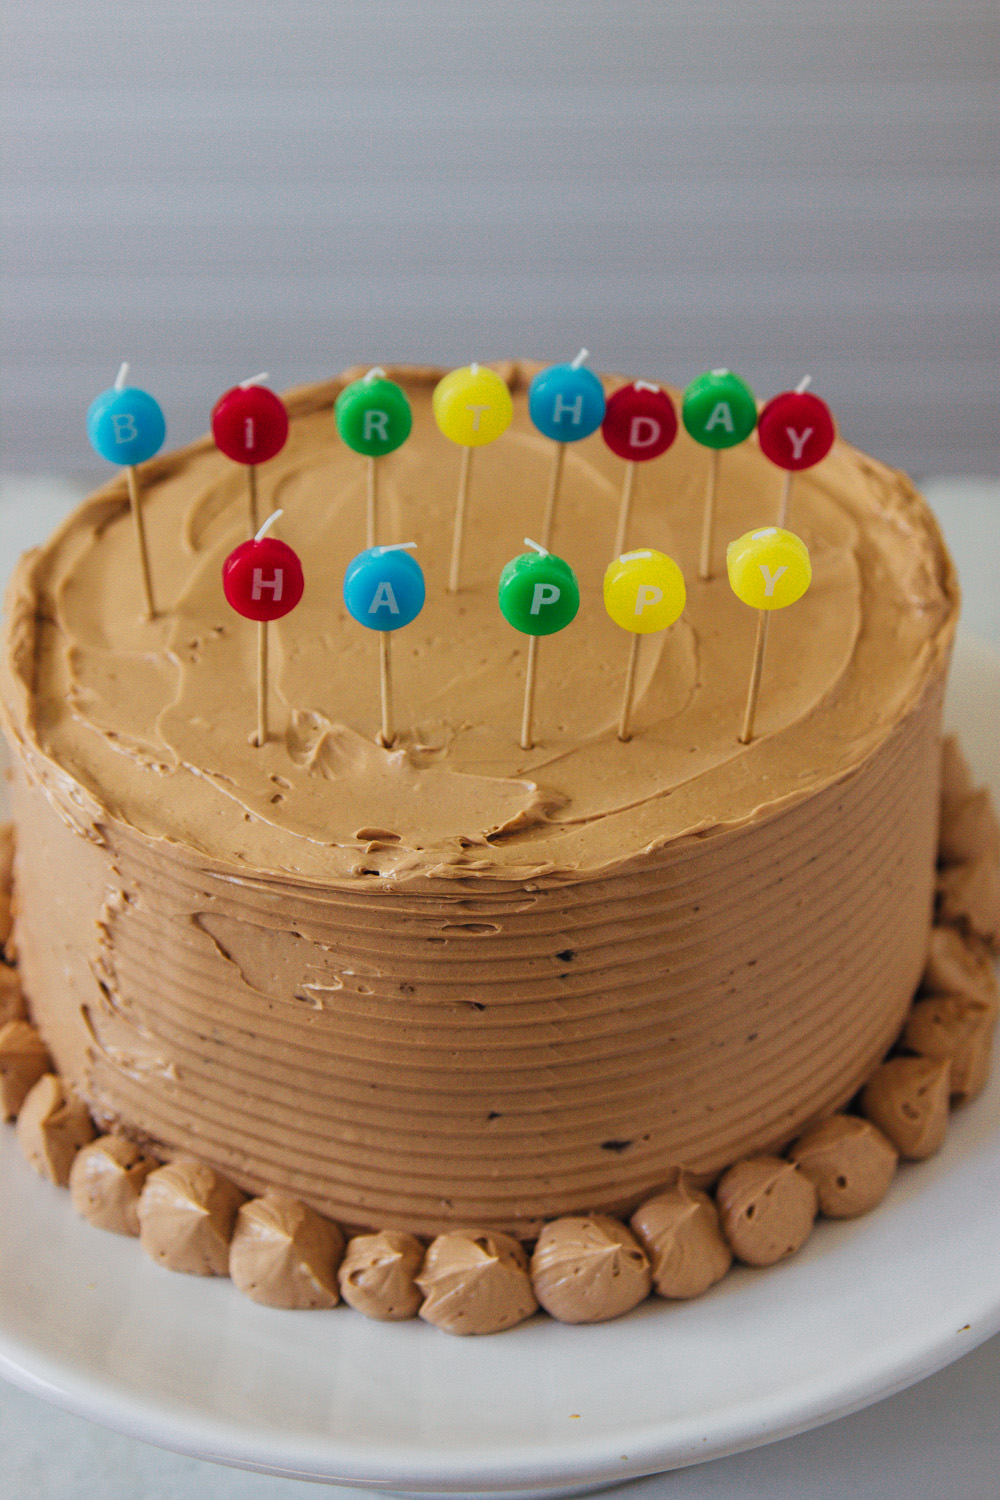 BANANA CAKE WITH MILK CHOCOLATE BUTTERCREAM